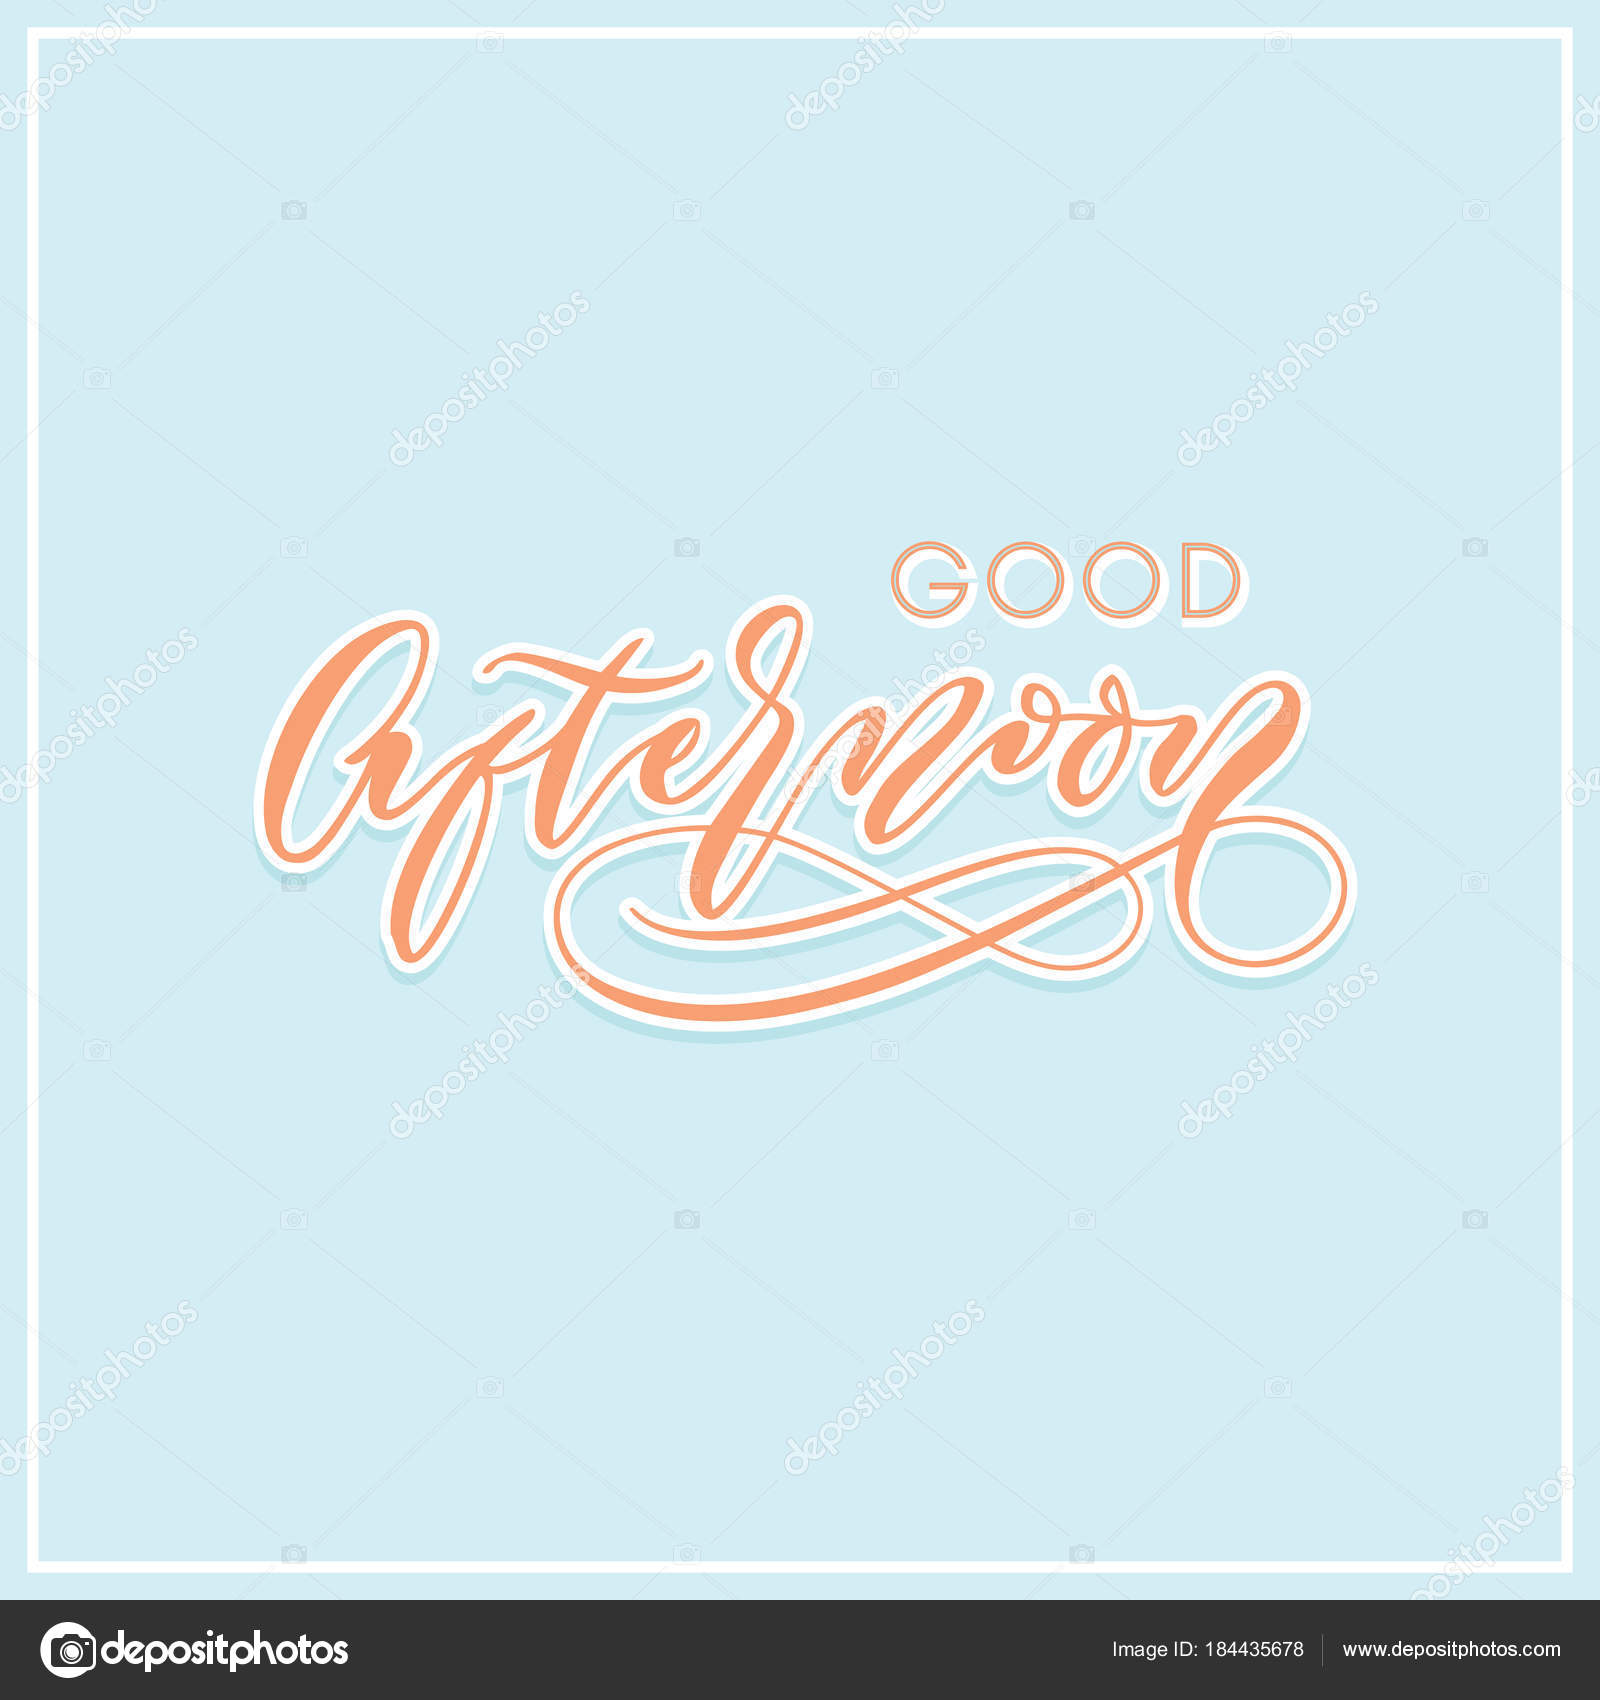 Good Afternoon Modern Calligraphy Typography Greeting Card Stock